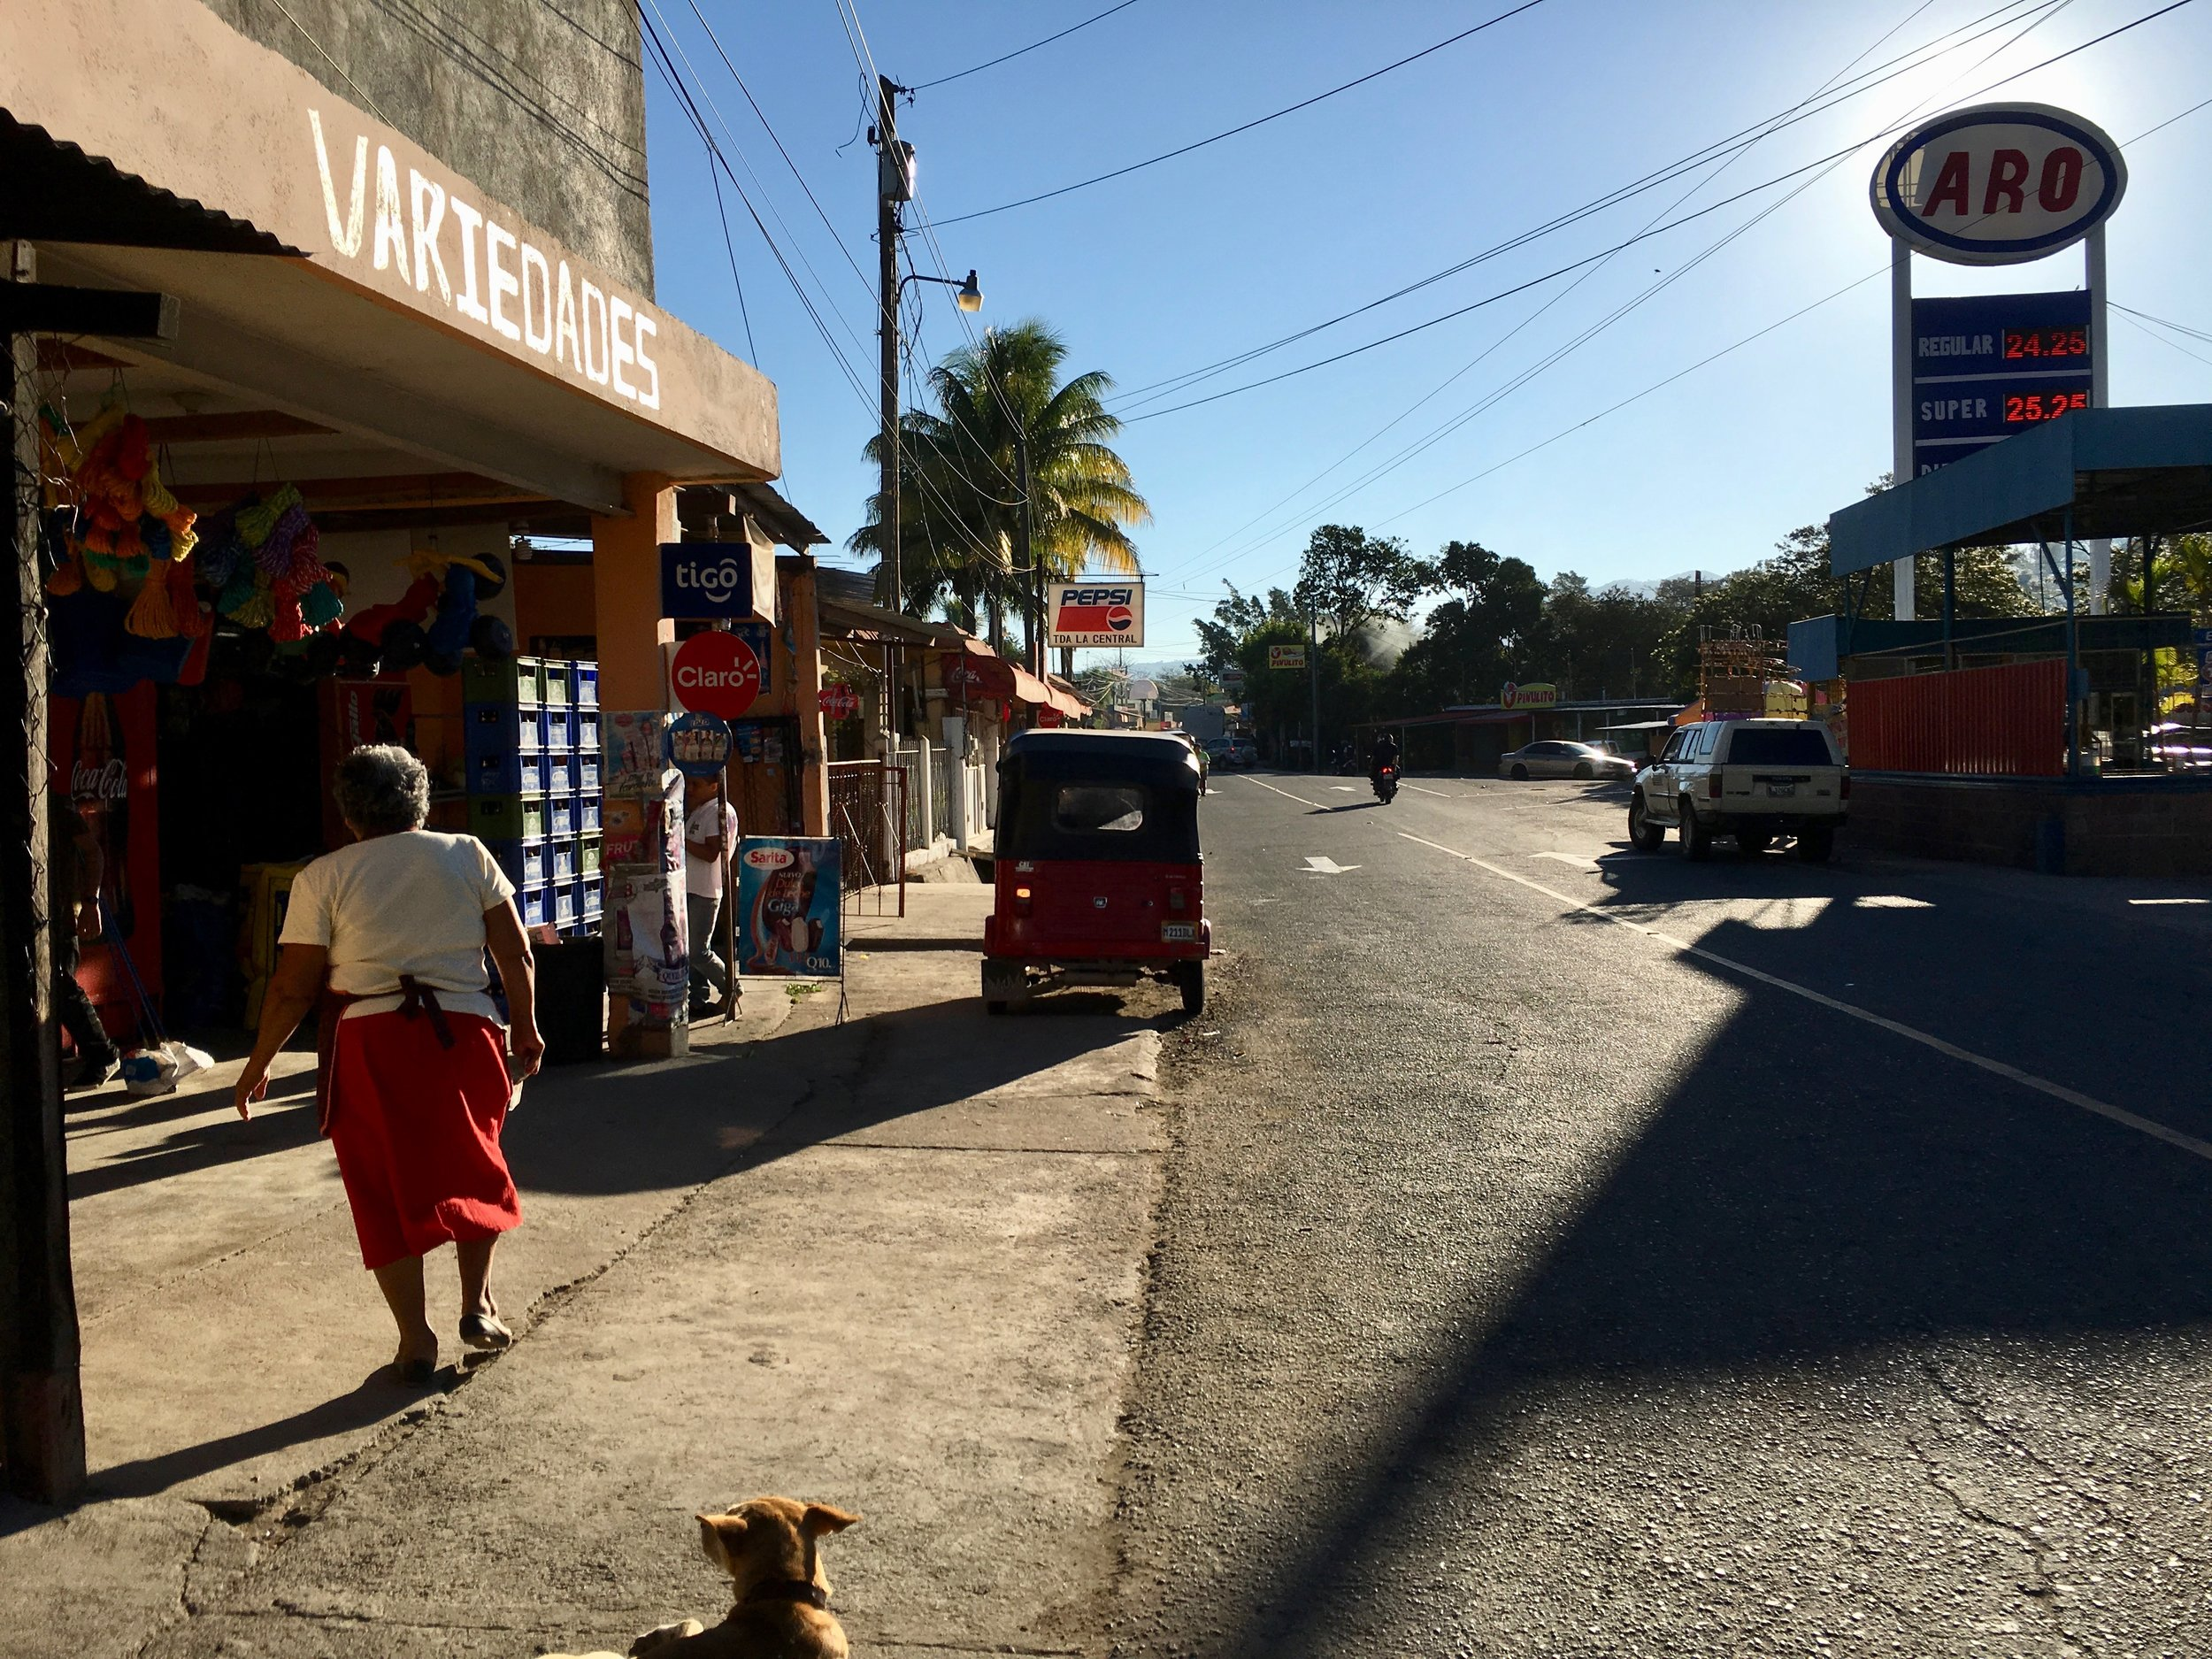 Near the center of Aldea Amberes in Santa Rosa, a small town at the convergence of three roads in southeast Guatemala